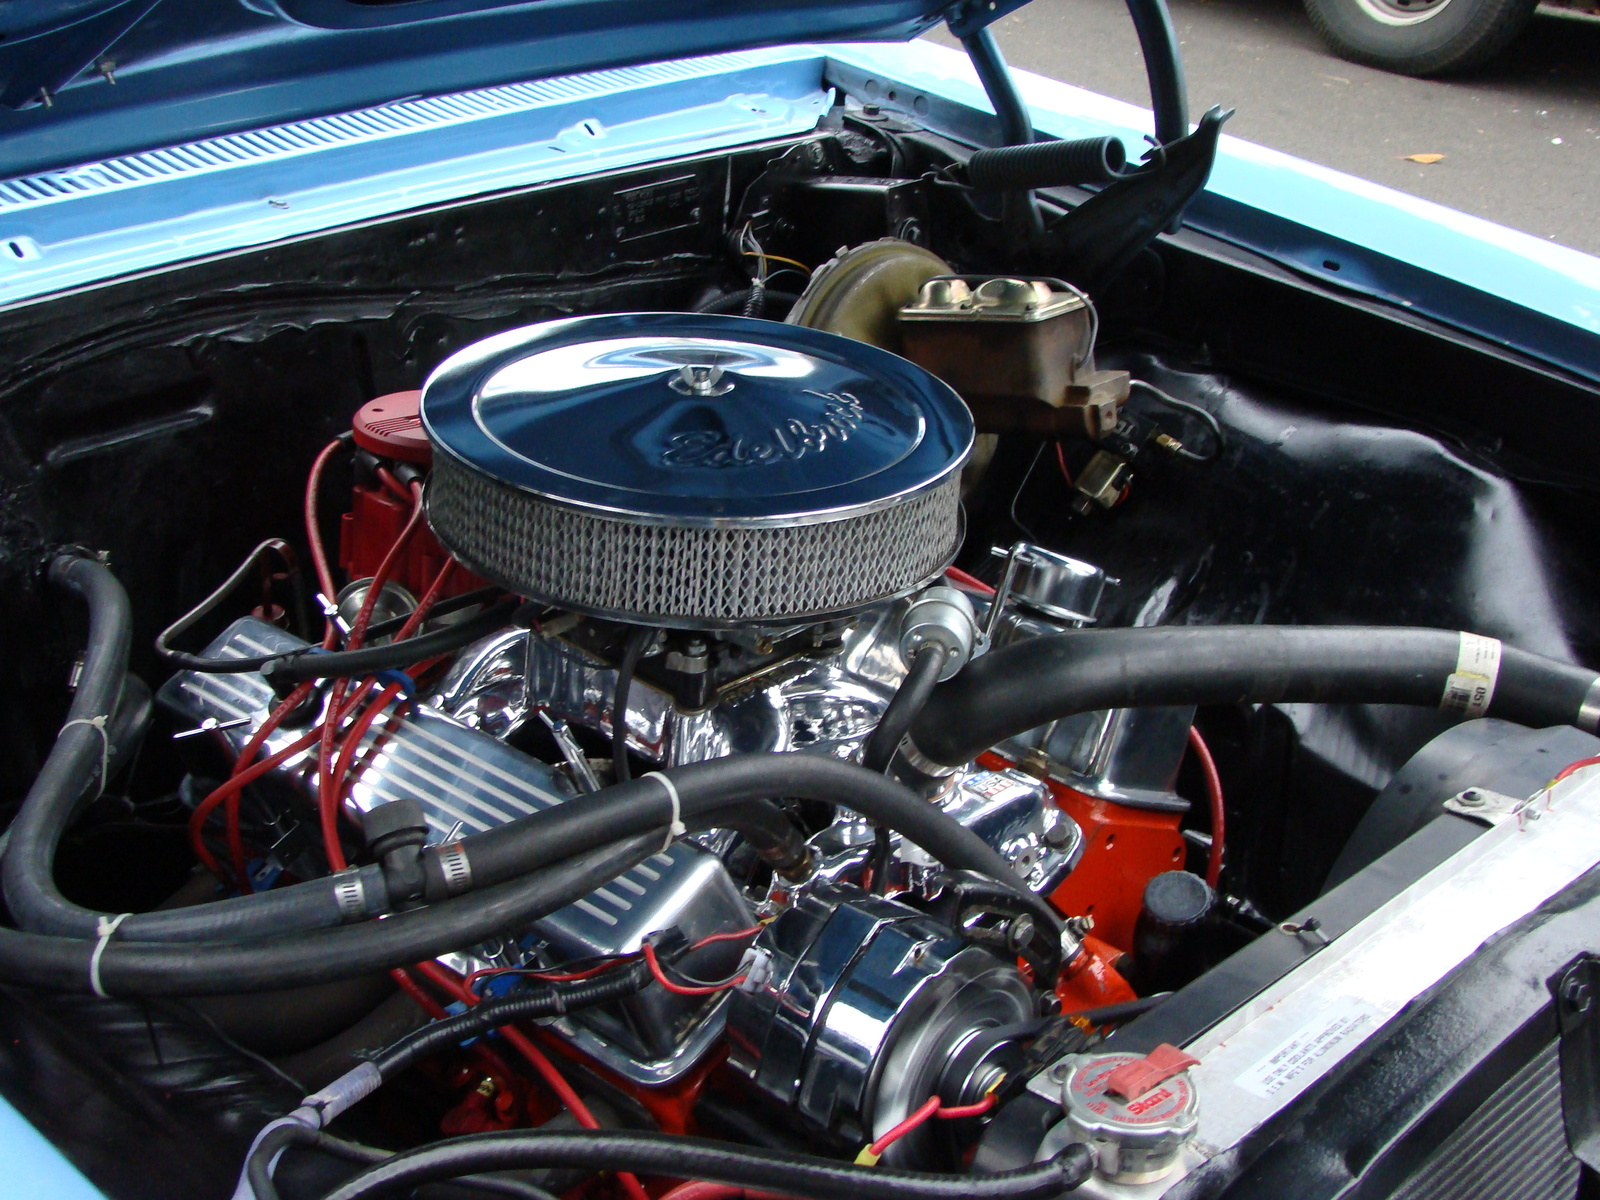 1967 Chevrolet Malibu picture, engine